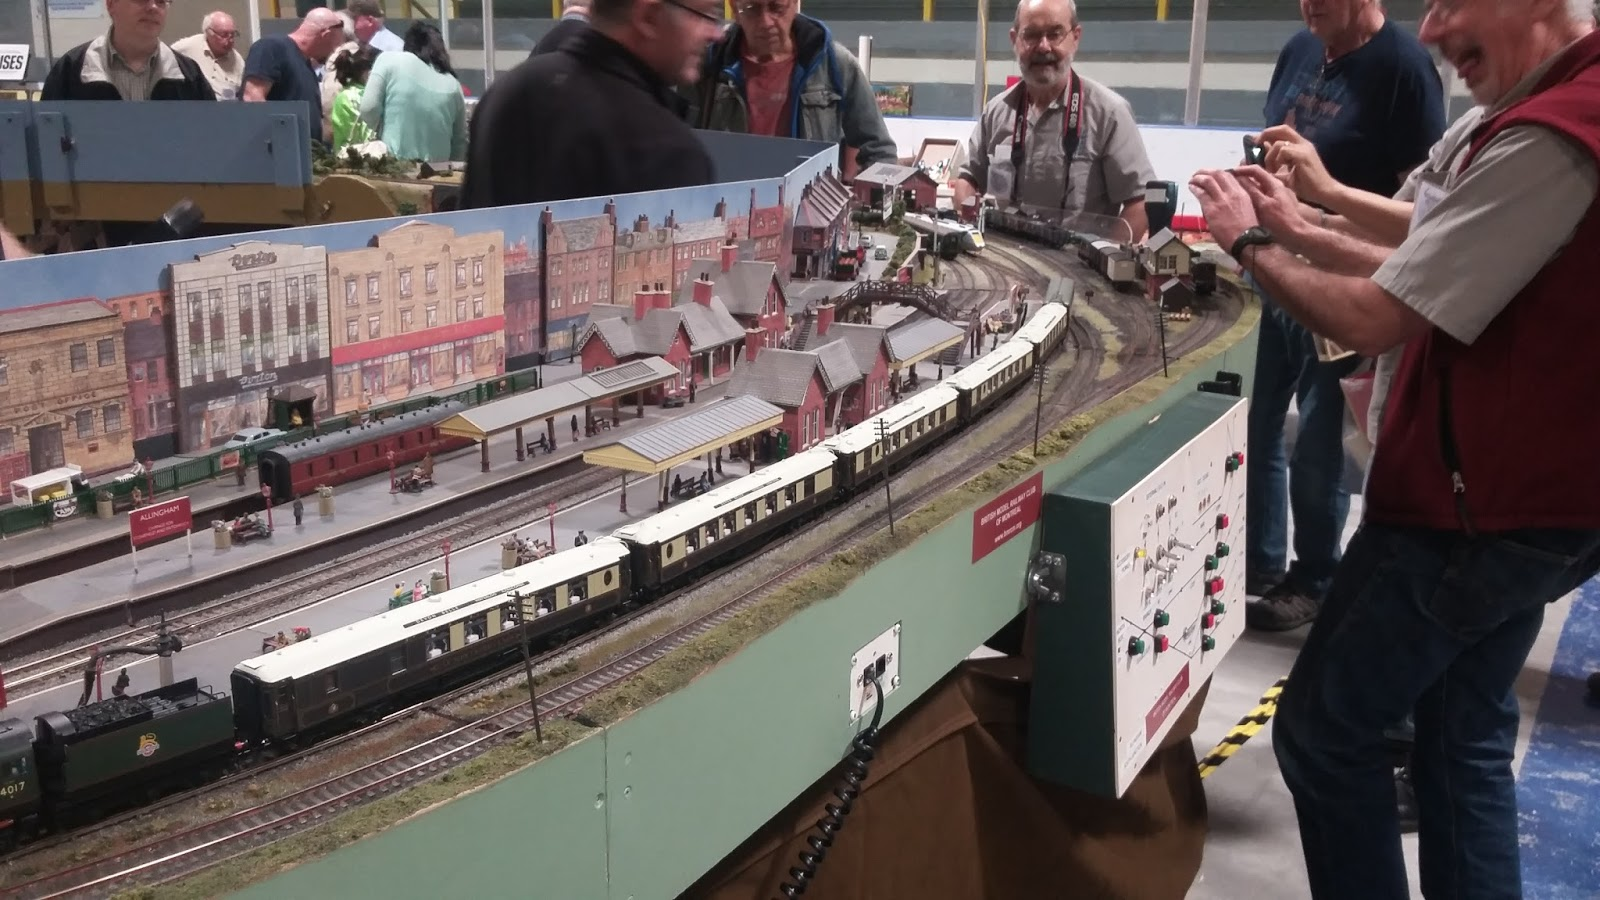 Photos From The Great British Train Show In Brampton Ontario On 7th And 8th Of May 2017 Showing Allingham Layout With Prototype Hst